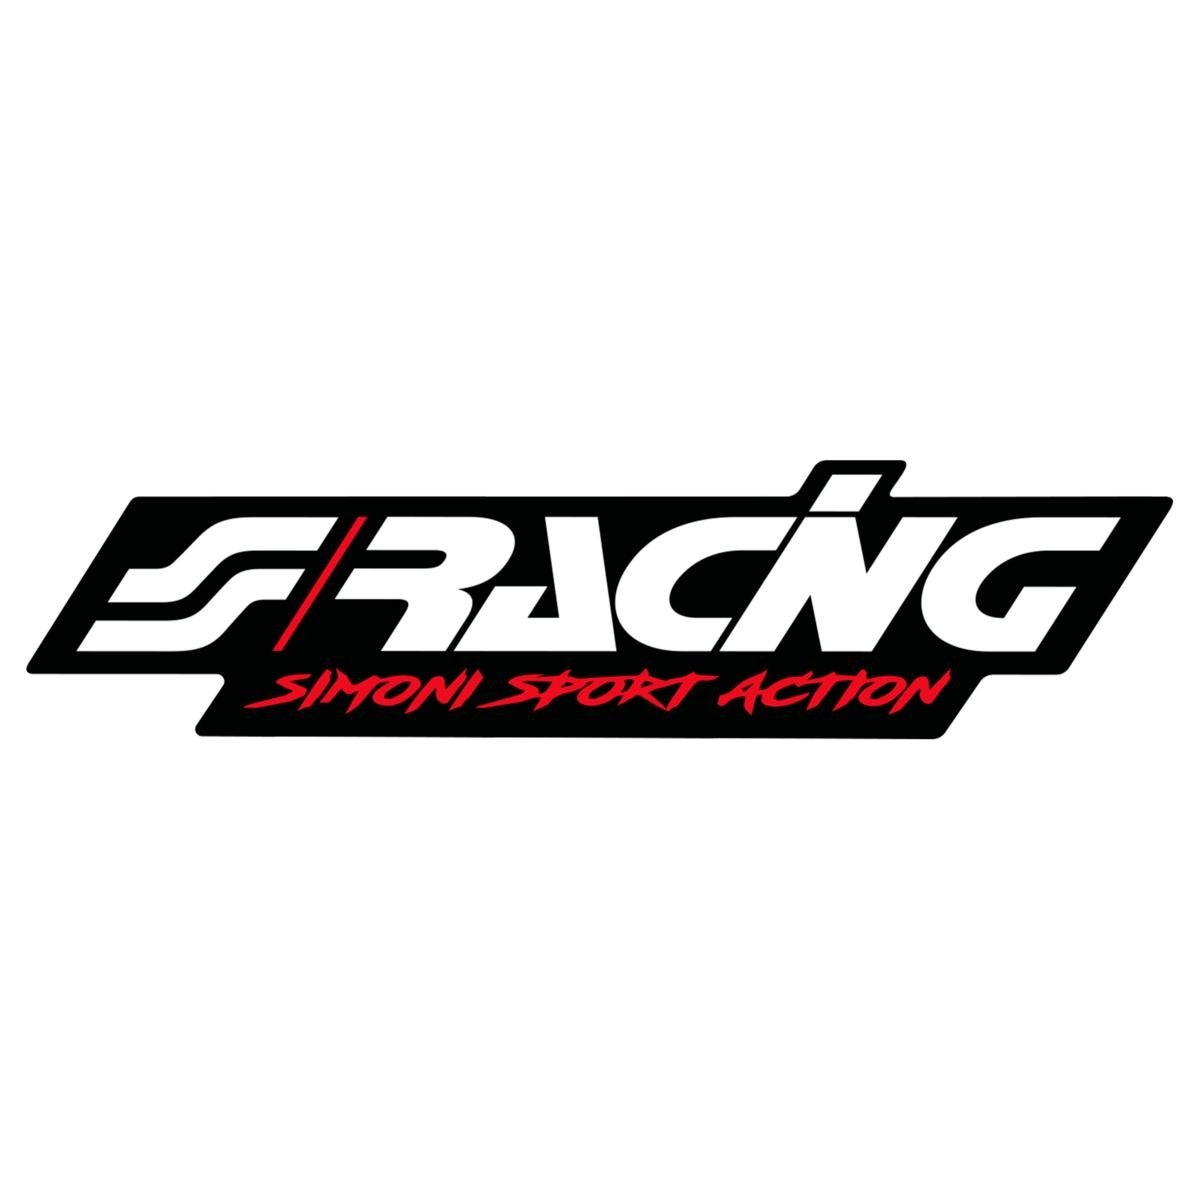 Sticker logo 2 120x29 mm black background adhesive simoni racing